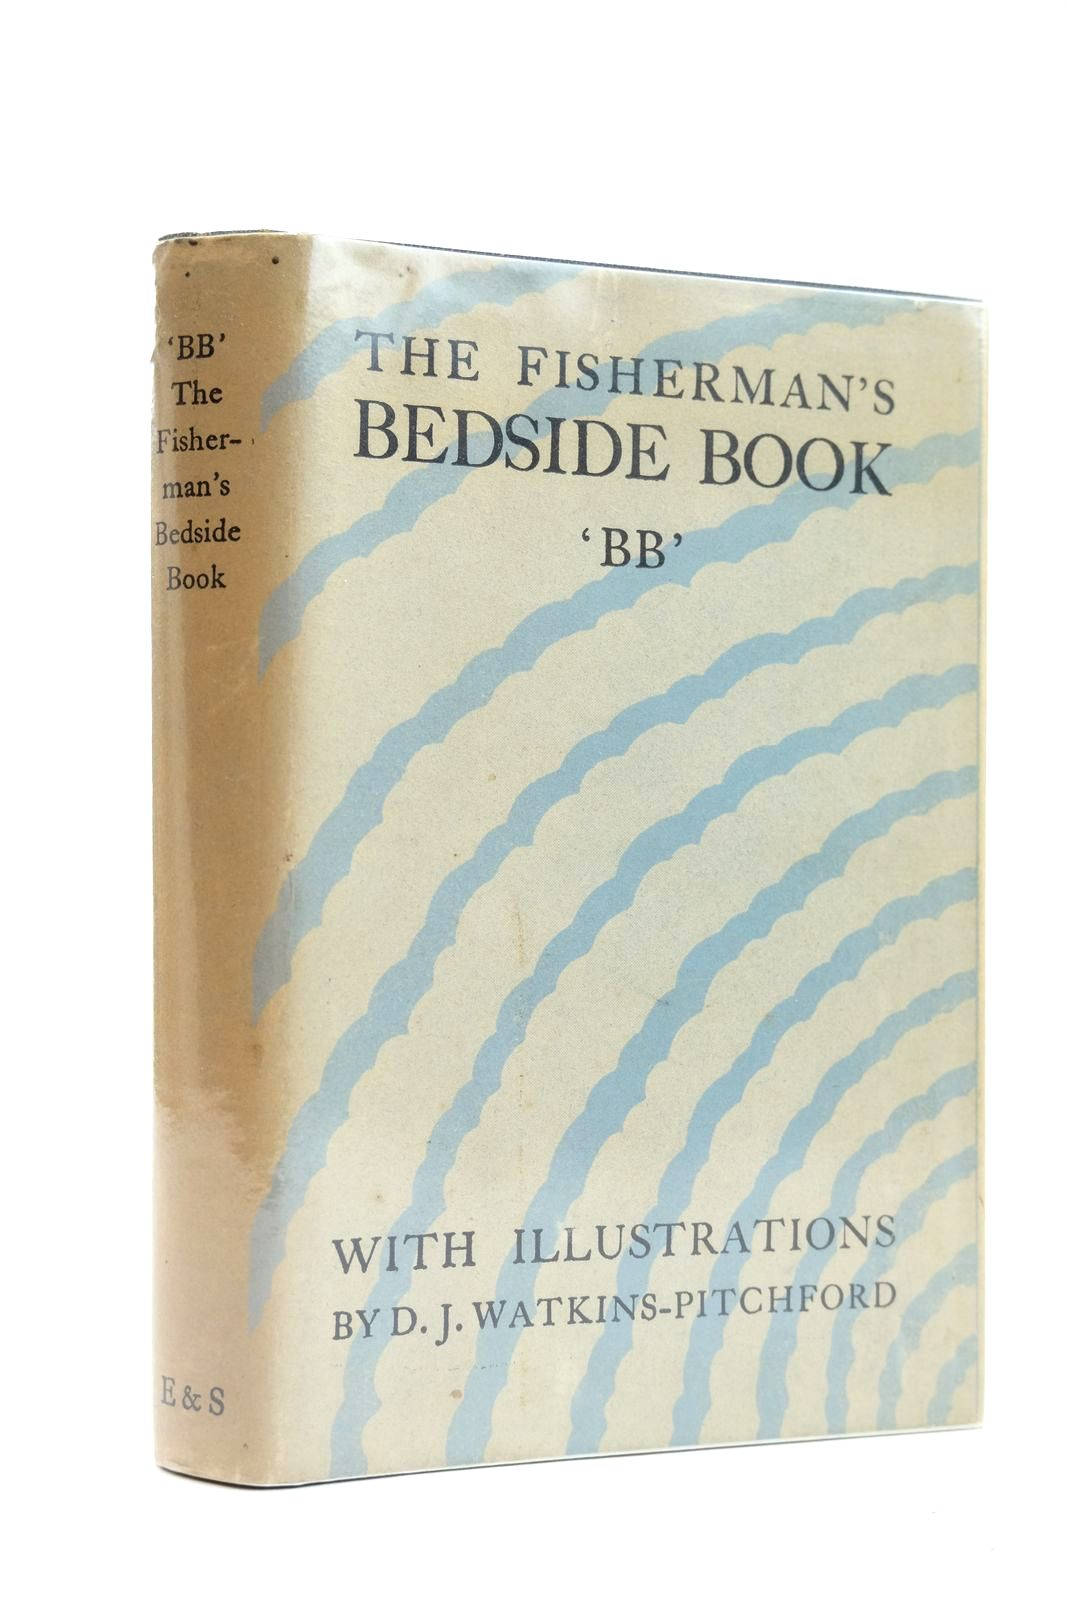 Photo of THE FISHERMAN'S BEDSIDE BOOK written by BB,  illustrated by BB,  published by Eyre & Spottiswoode (STOCK CODE: 2131769)  for sale by Stella & Rose's Books